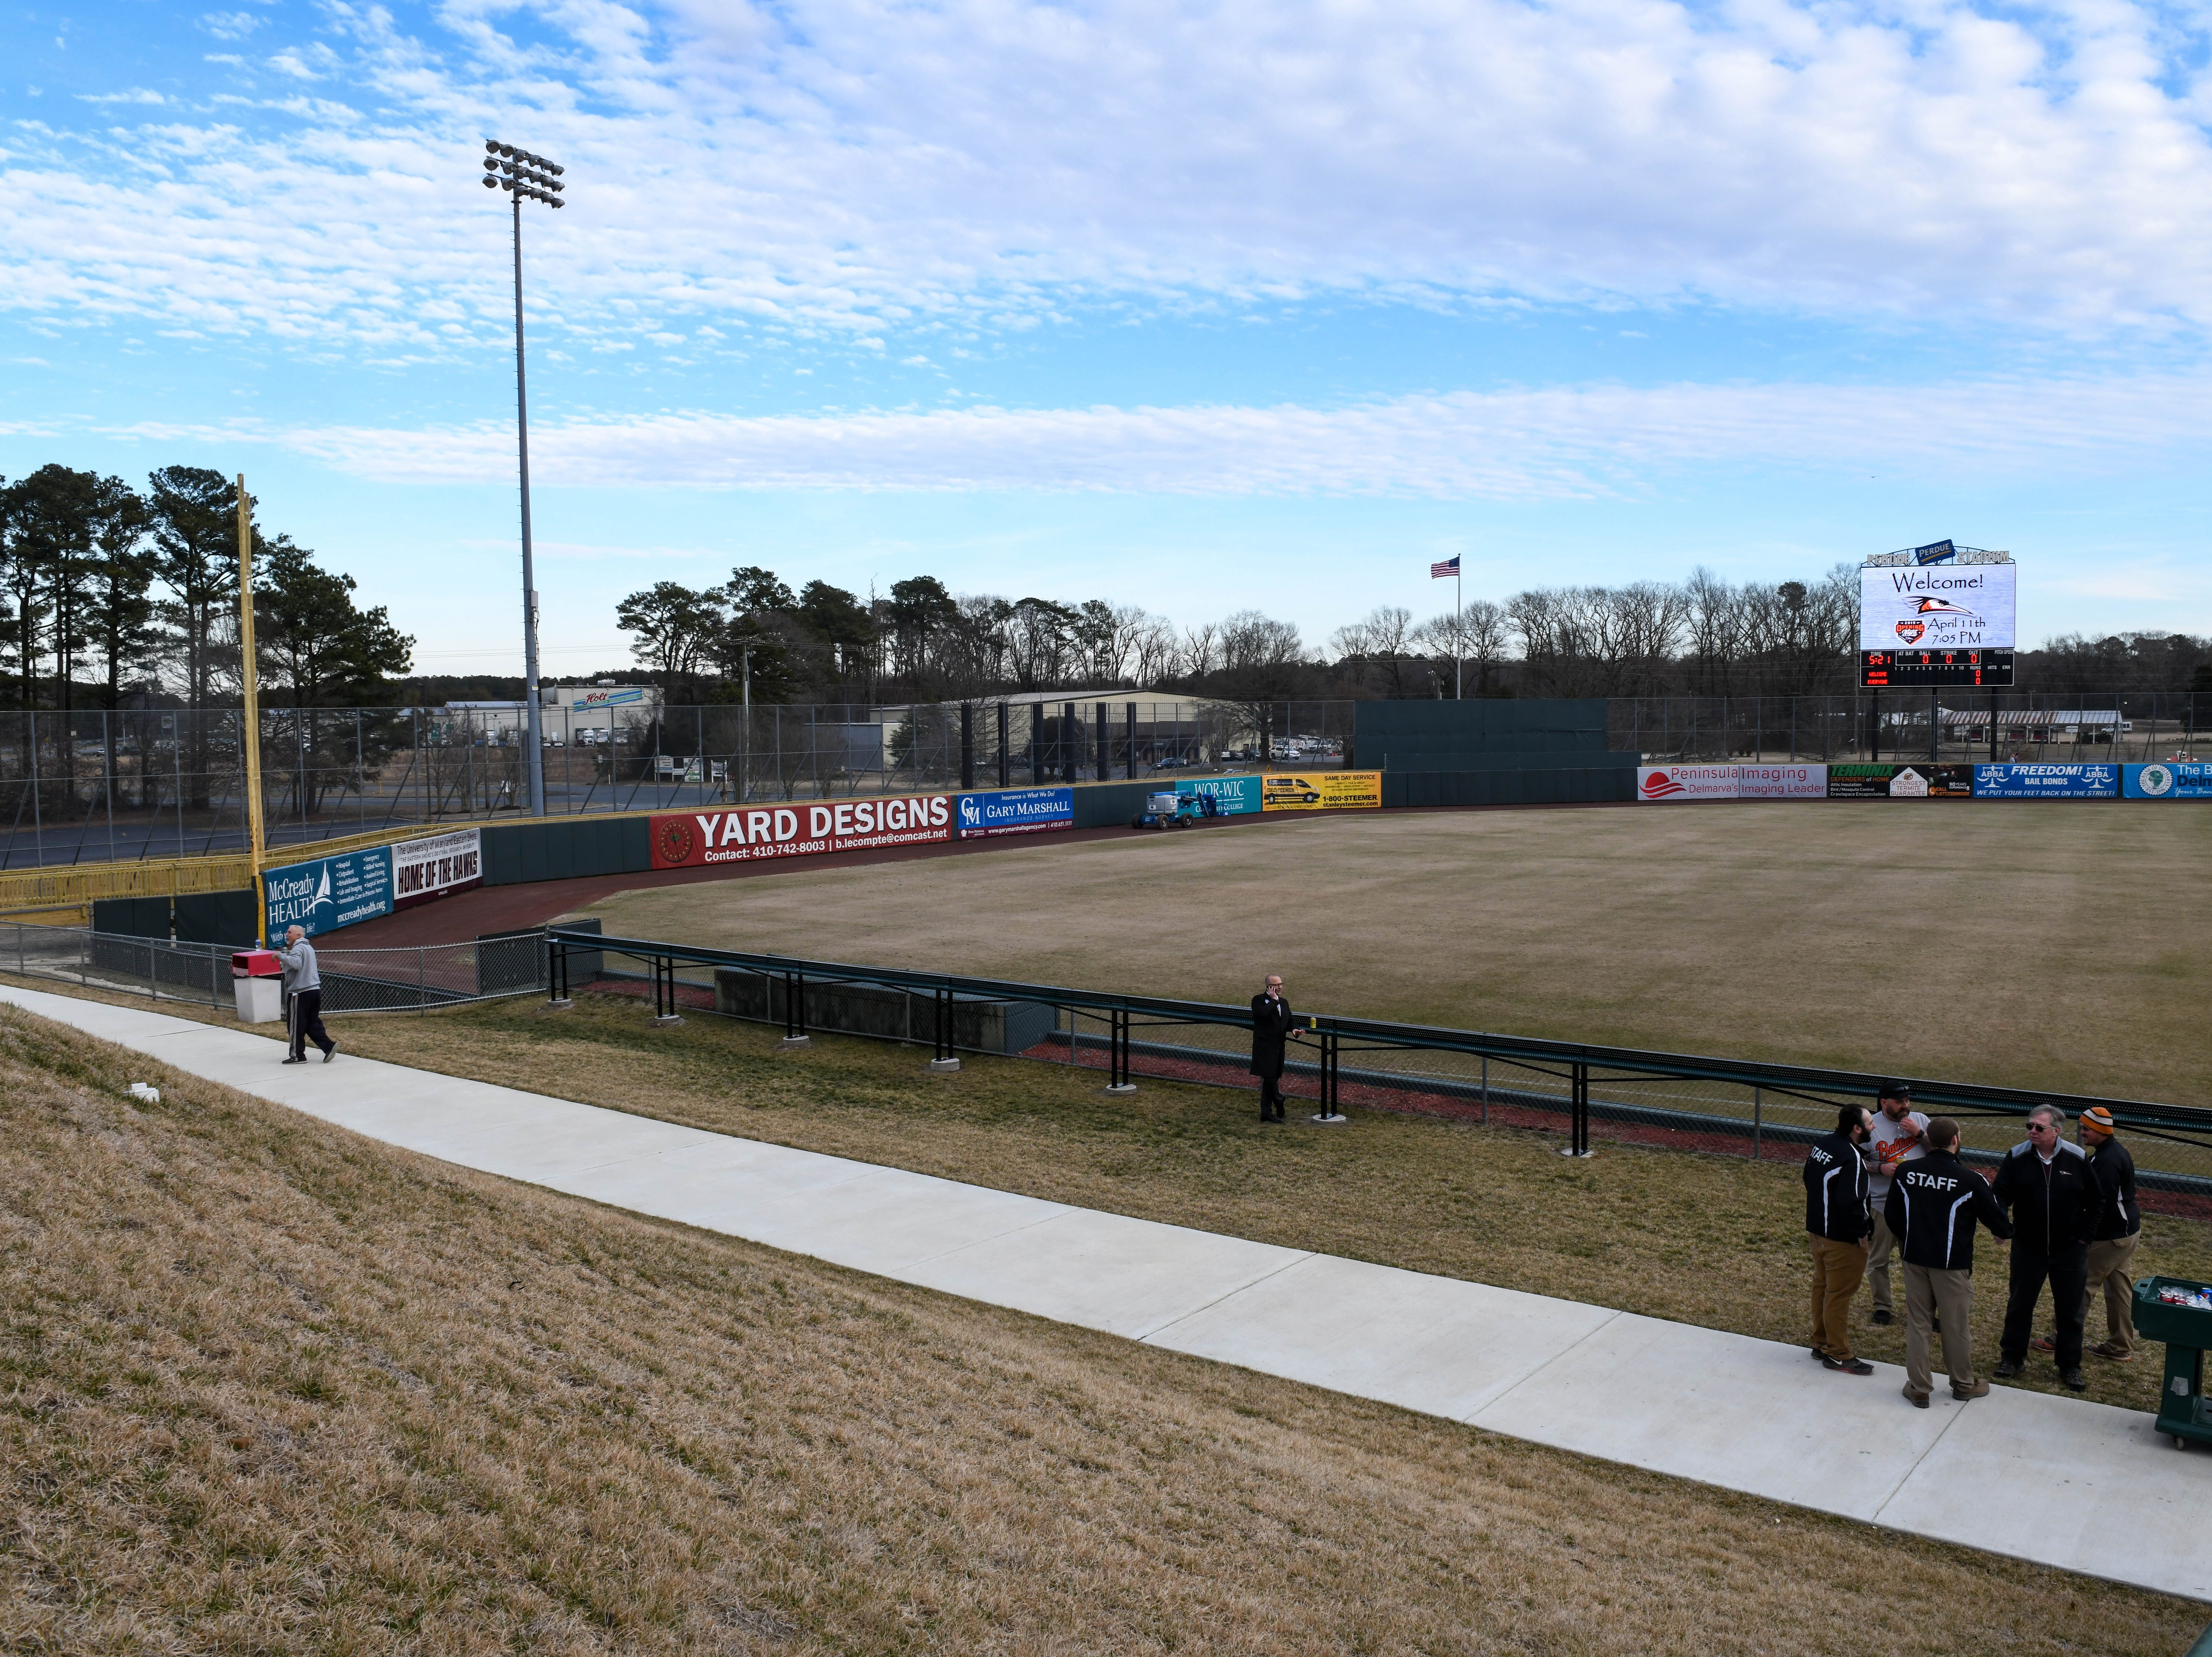 Attendees enjoy the new wrap around boardwalk deck at Perdue Stadium at an open house event on Wednesday, Mach 13, 2019.